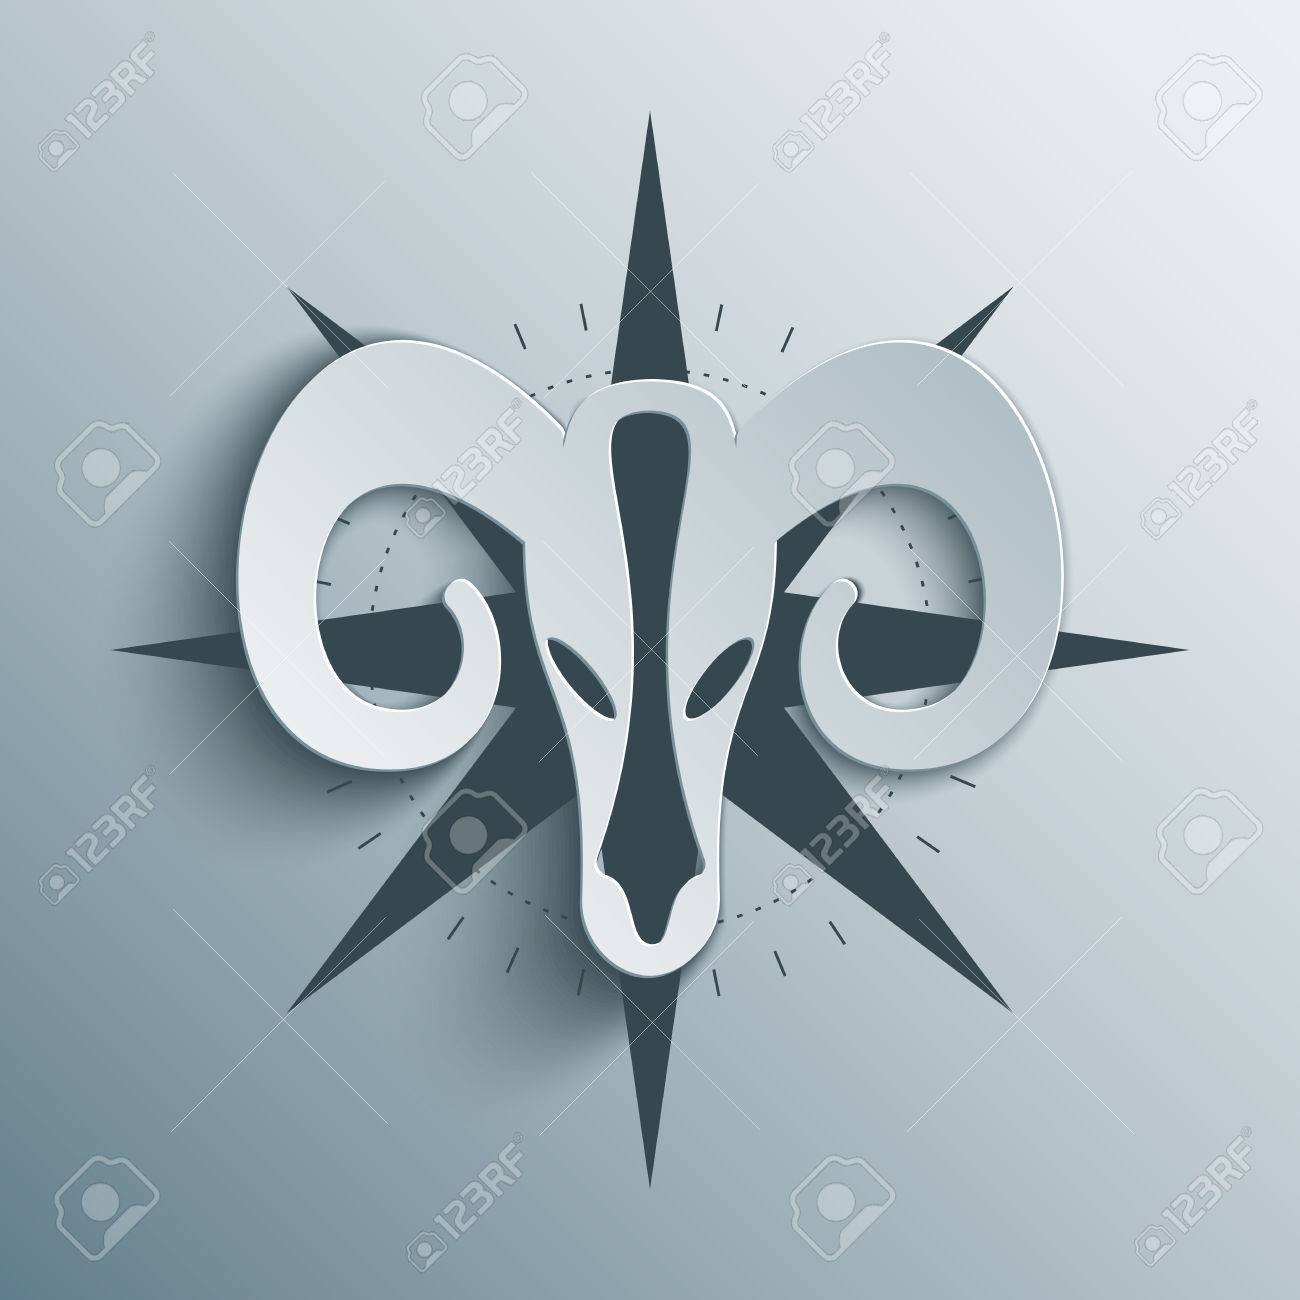 zodiac sign aries with